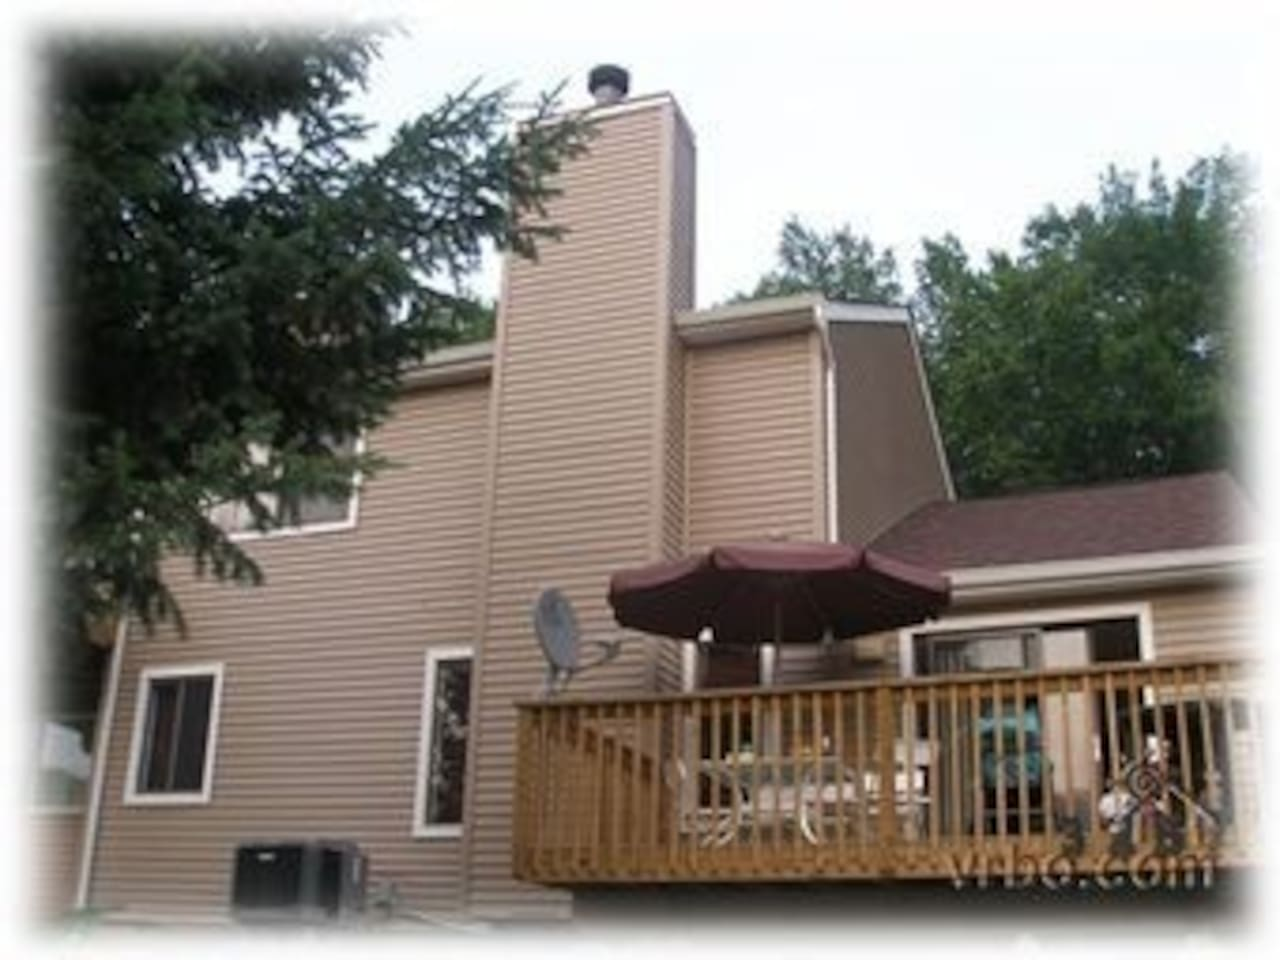 Spacious Townhome Across from Lake